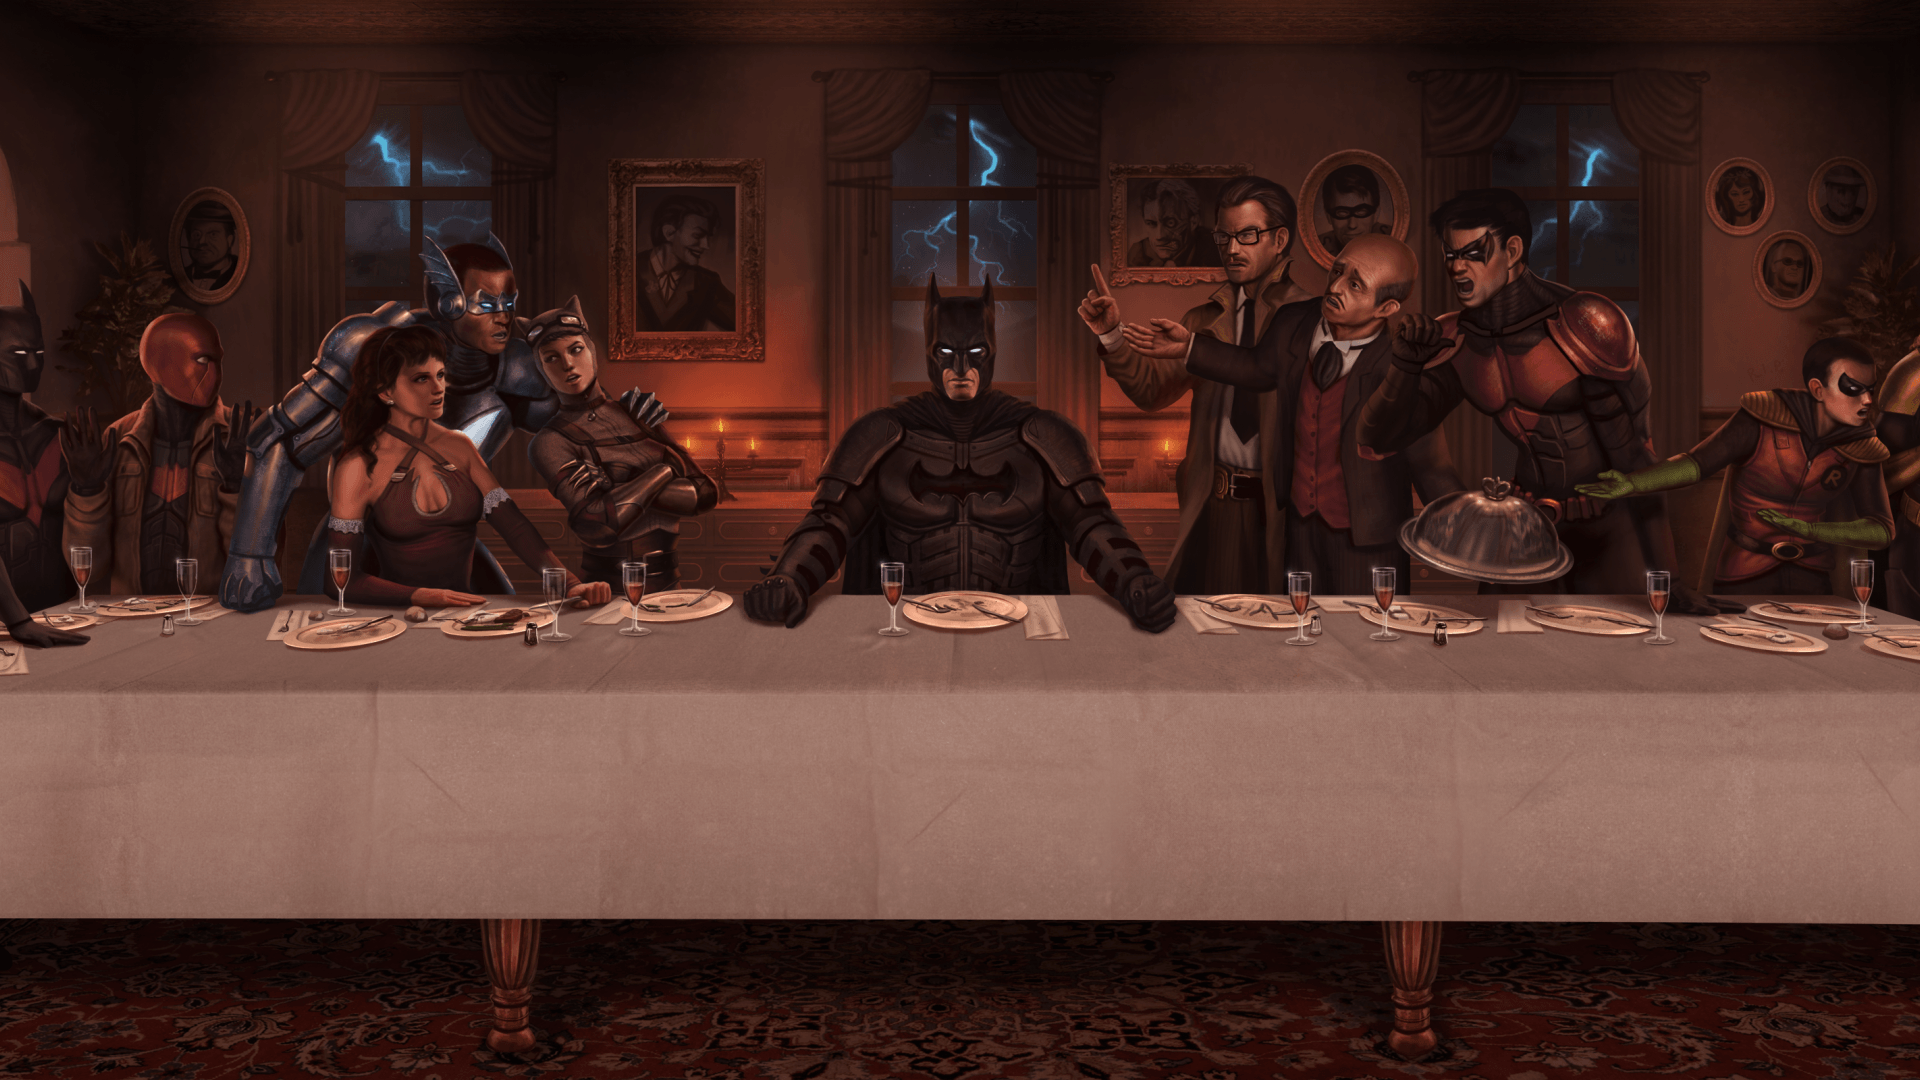 Red hood Dc comics The last supper Batman Nightwing Cne Robin